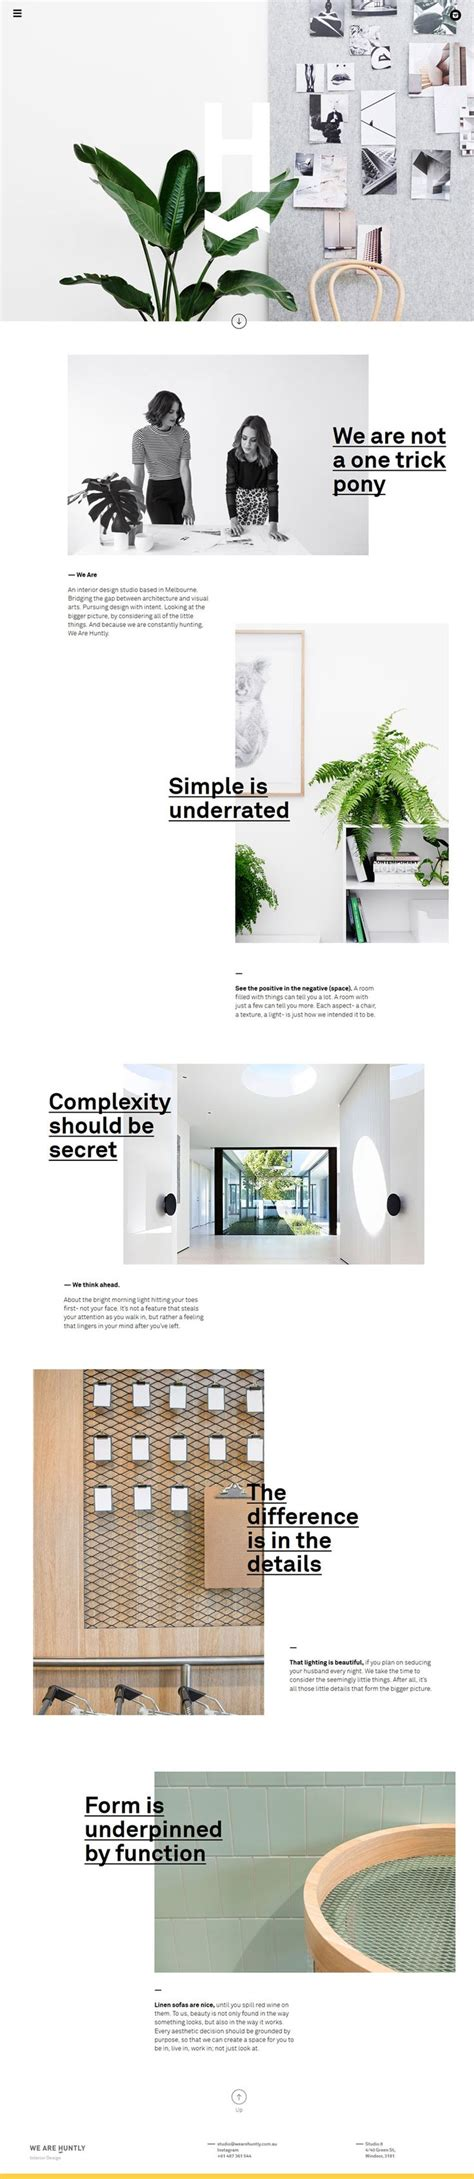 minimal graphic design layout 115 best graphic design images on pinterest graphics